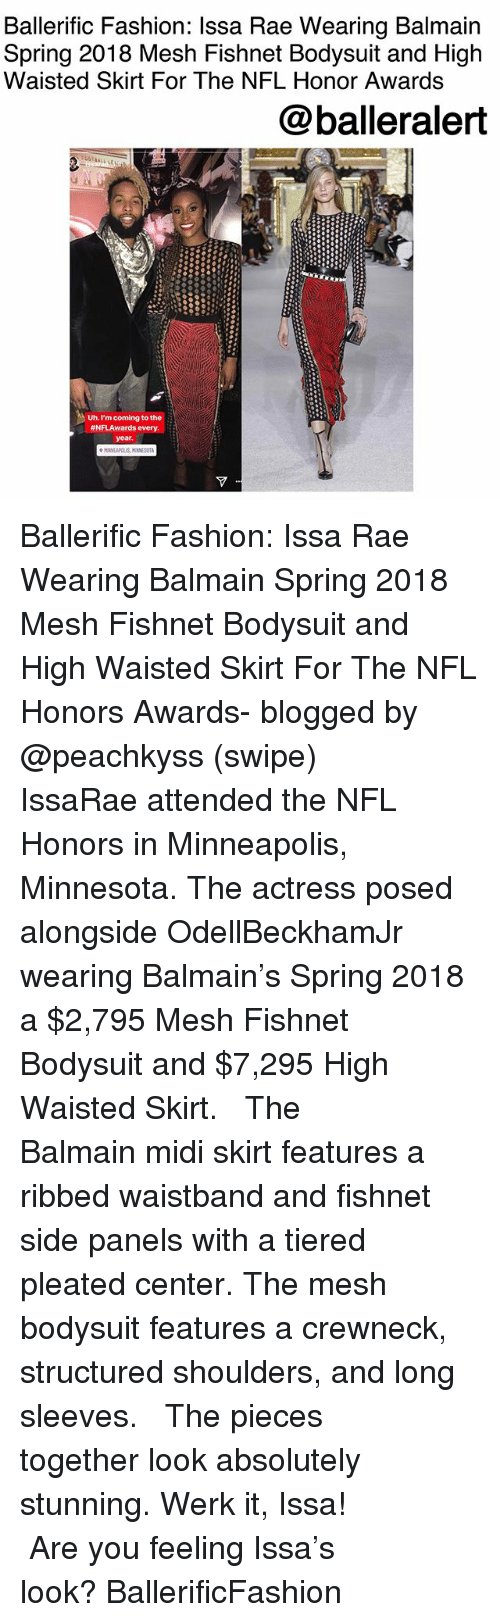 werk: Ballerific Fashion: Ilssa Rae Wearing Balmain  Spring 2018 Mesh Fishnet Bodysuit and High  Waisted Skirt For The NFL Honor Awards  @balleralert  Uh. I'm coming to the  #NFLAwards every.  MINNEAPOLIS Ballerific Fashion: Issa Rae Wearing Balmain Spring 2018 Mesh Fishnet Bodysuit and High Waisted Skirt For The NFL Honors Awards- blogged by @peachkyss (swipe) ⠀⠀⠀⠀⠀⠀⠀ ⠀⠀⠀⠀⠀⠀⠀ IssaRae attended the NFL Honors in Minneapolis, Minnesota. The actress posed alongside OdellBeckhamJr wearing Balmain's Spring 2018 a $2,795 Mesh Fishnet Bodysuit and $7,295 High Waisted Skirt. ⠀⠀⠀⠀⠀⠀⠀ ⠀⠀⠀⠀⠀⠀⠀ The Balmain midi skirt features a ribbed waistband and fishnet side panels with a tiered pleated center. The mesh bodysuit features a crewneck, structured shoulders, and long sleeves. ⠀⠀⠀⠀⠀⠀⠀ ⠀⠀⠀⠀⠀⠀⠀ The pieces together look absolutely stunning. Werk it, Issa! ⠀⠀⠀⠀⠀⠀⠀ ⠀⠀⠀⠀⠀⠀⠀ Are you feeling Issa's look? BallerificFashion